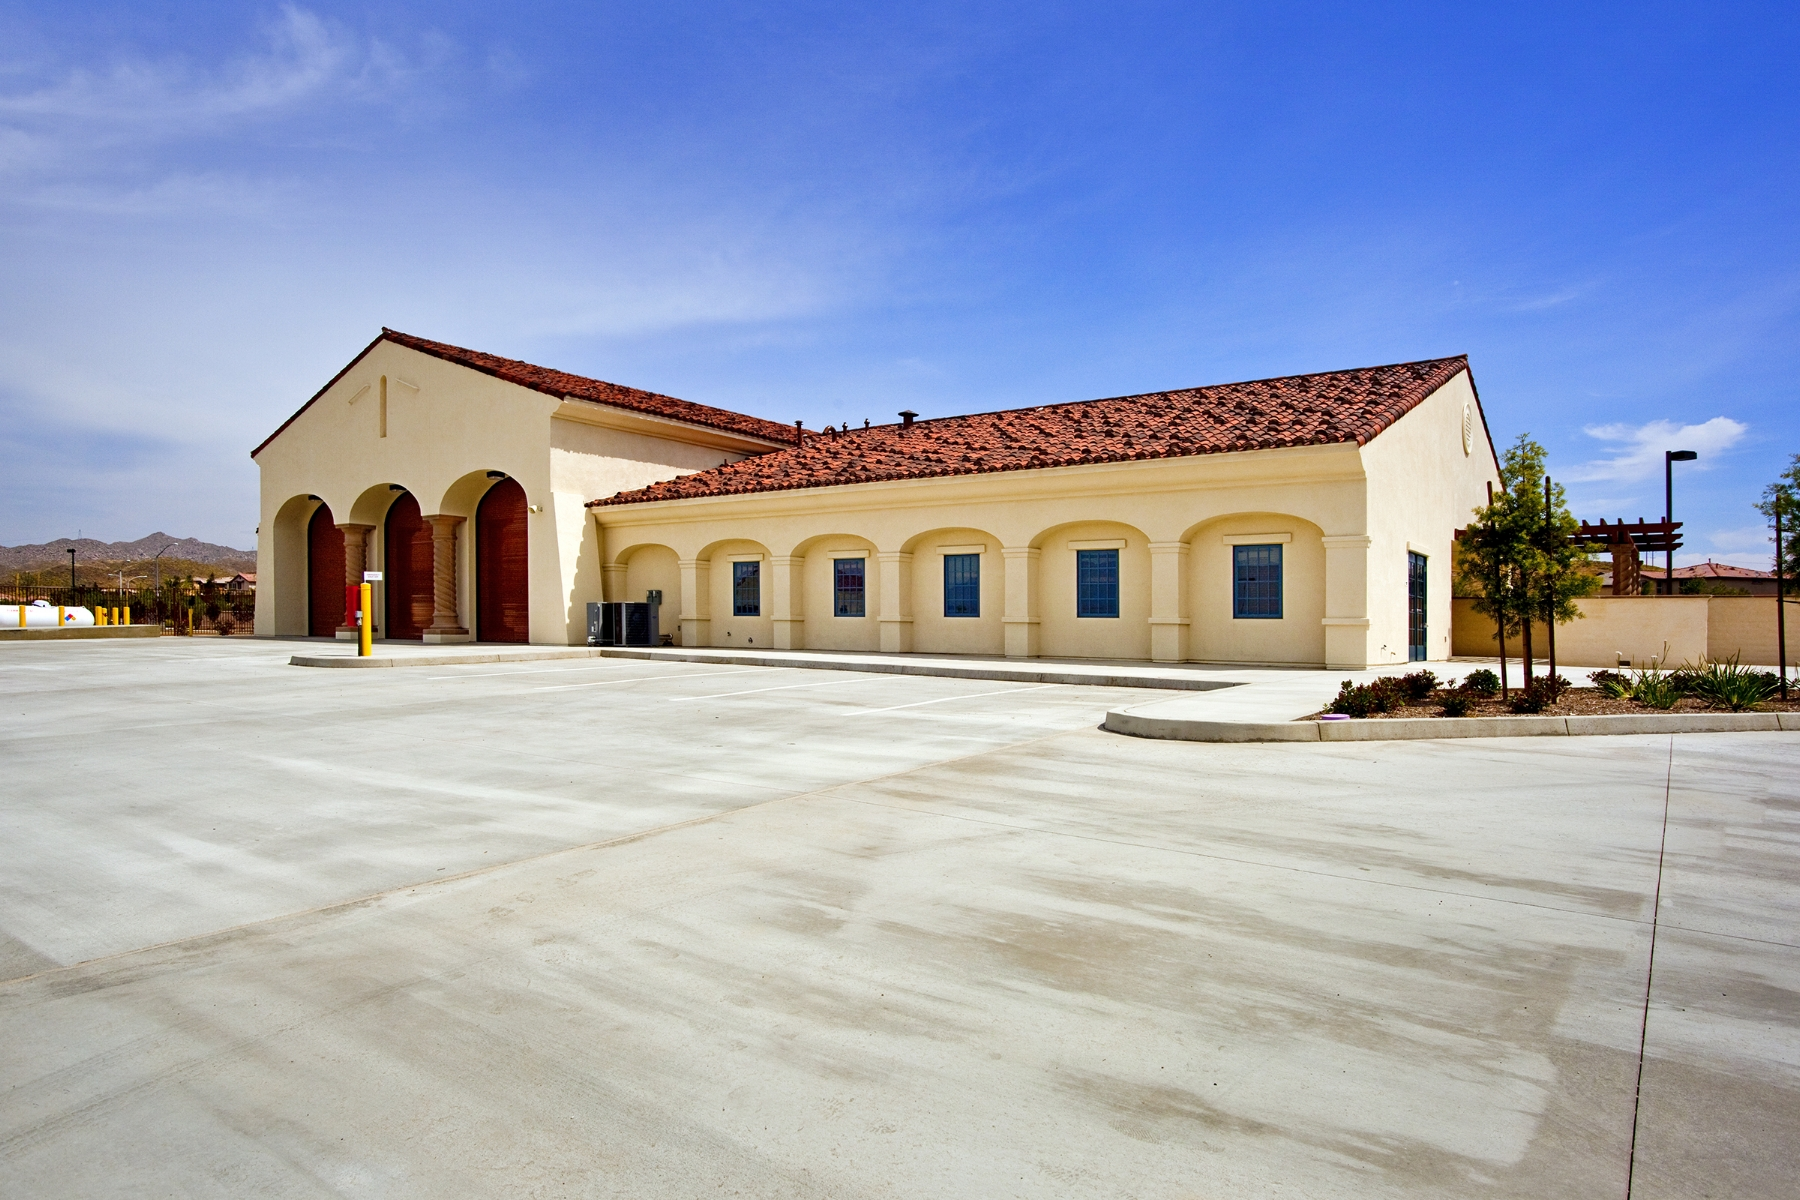 Fire_Station_Exterior